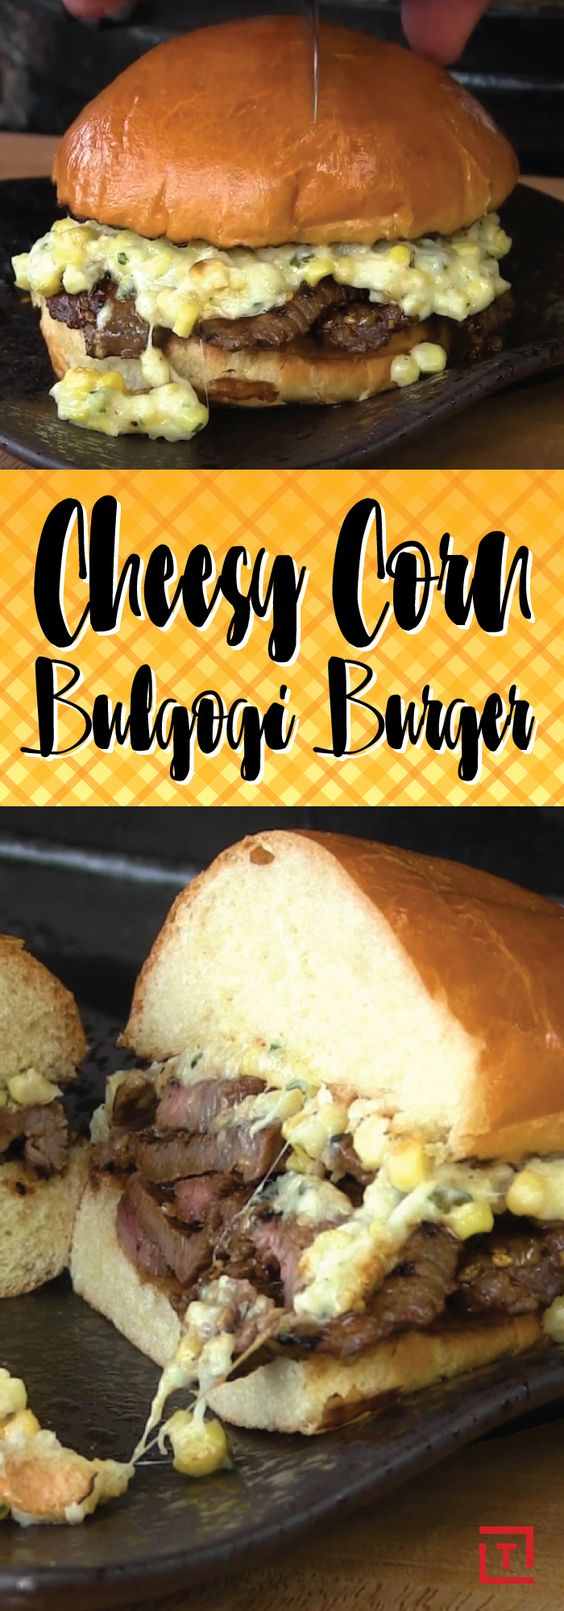 Given our perpetual devotion to burgers here at Thrillist, it should come as no surprise that we're always on the prowl for the next great achievement between buns. Behold, Ballistic BBQ's cheesy corn bulgogi burger: an American twist on a Korean staple, blending bold Asian flavors with roasted corn for textural bliss and, lest we forget, cheese. Because Americans can't help themselves.